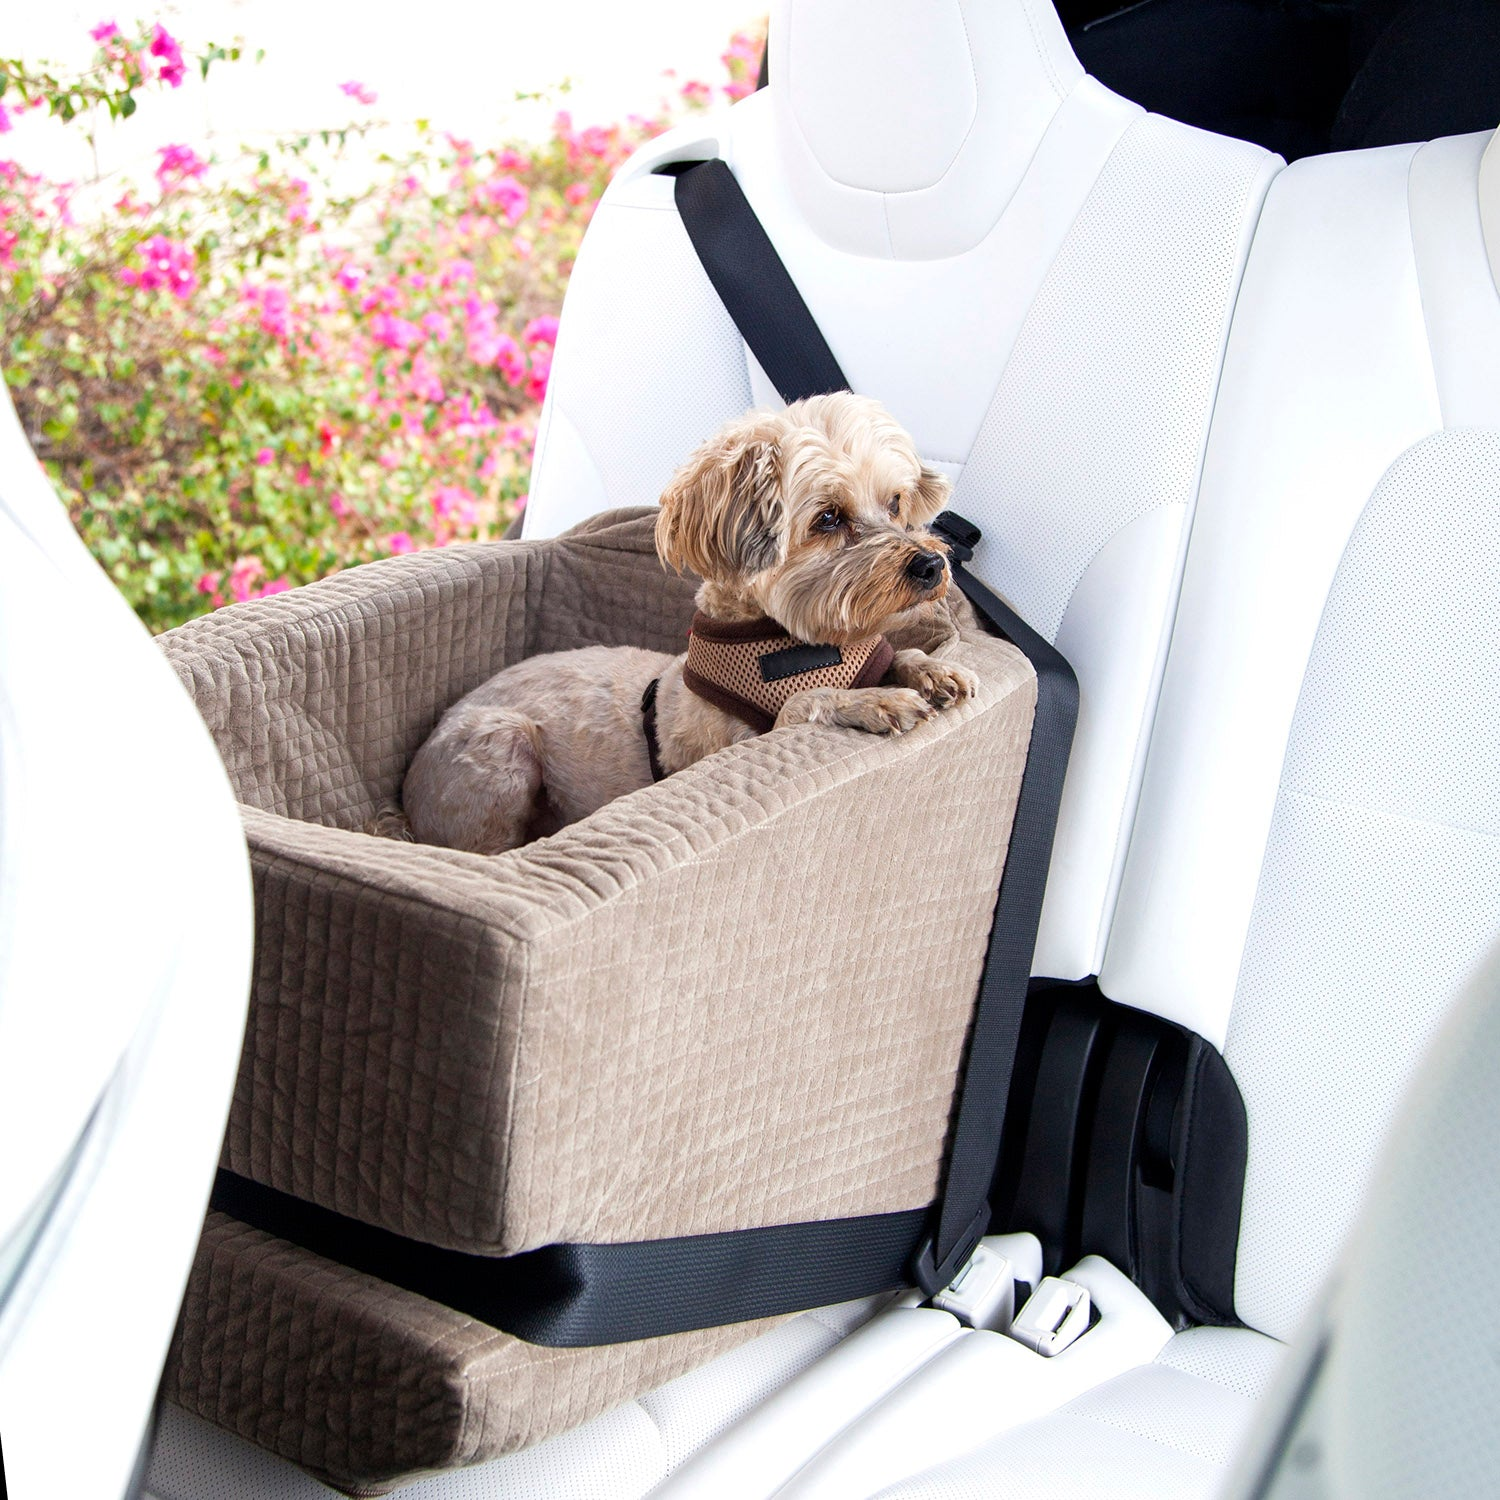 Travel in style and comfort with Animals Matter Companion Car Seat